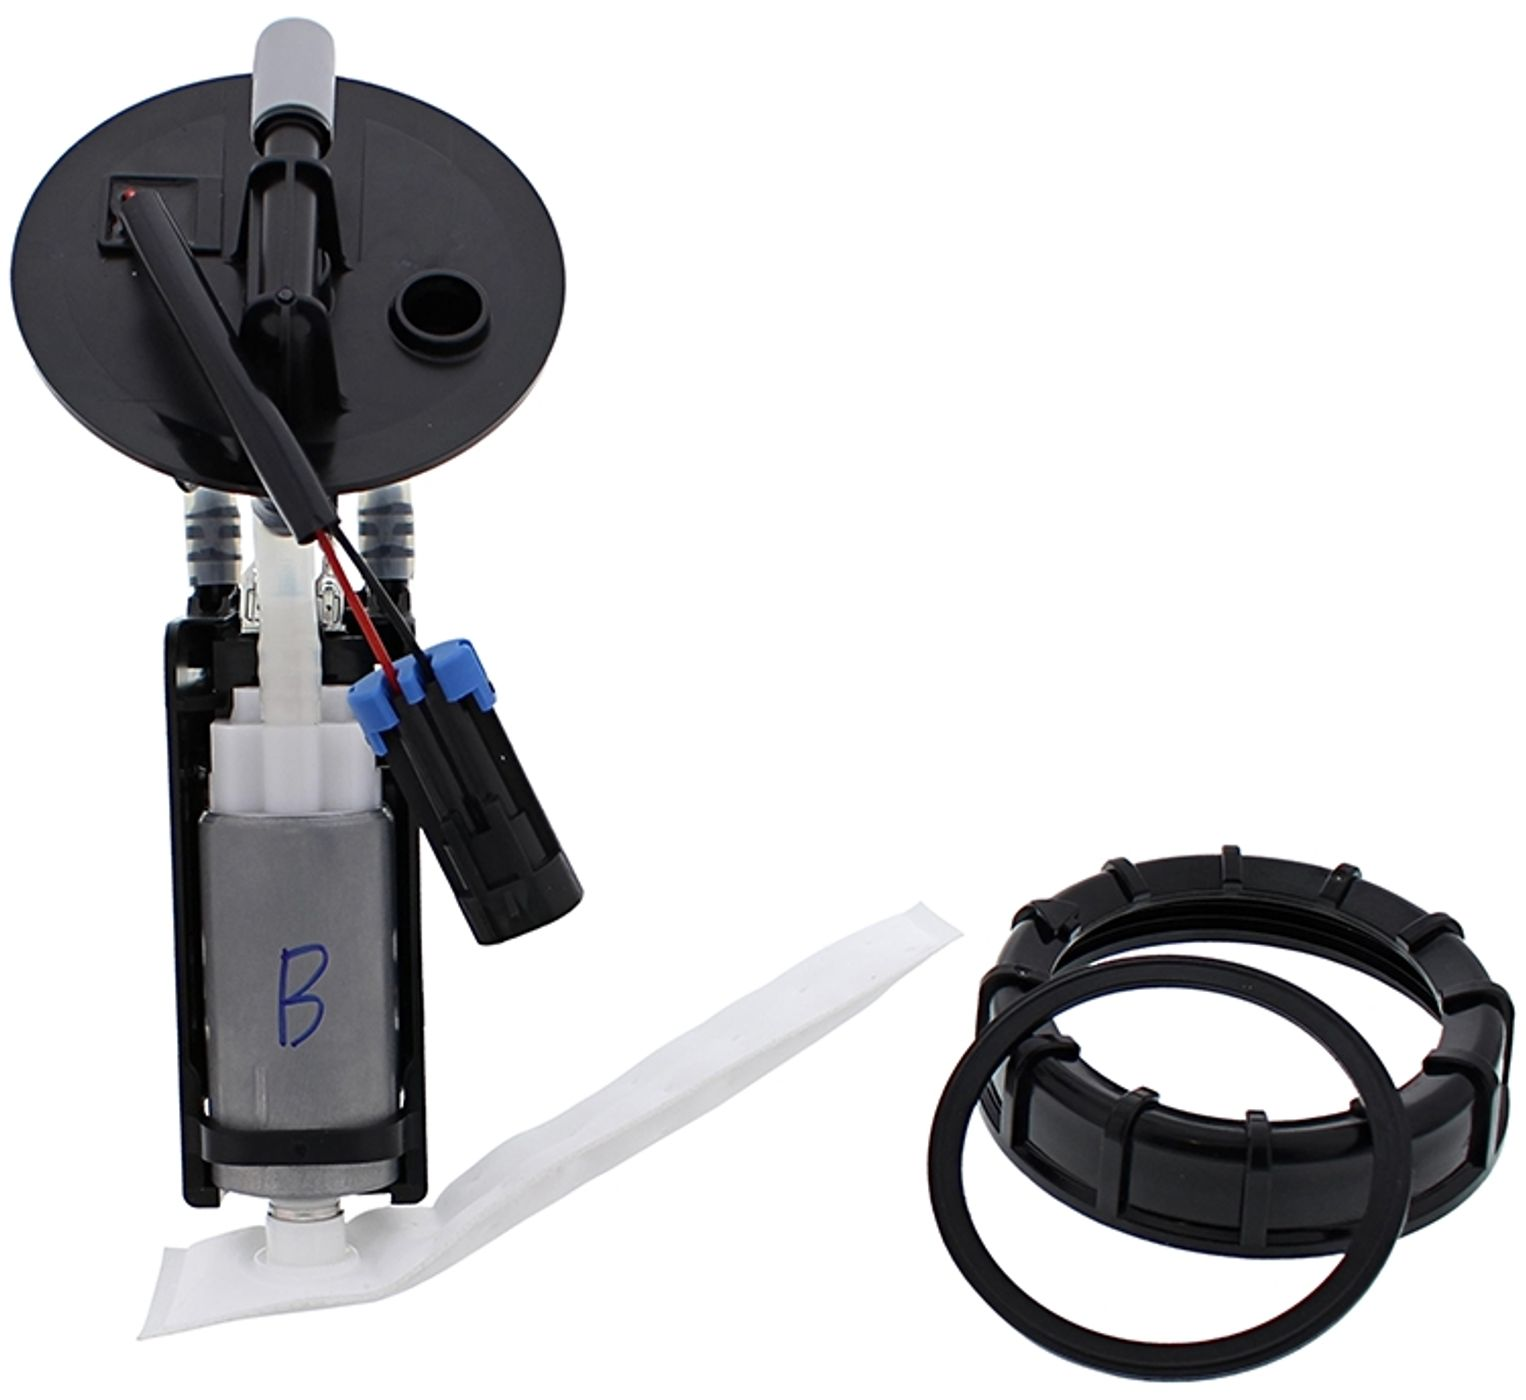 Wrp Fuel Pump Modules - WRP471021 image